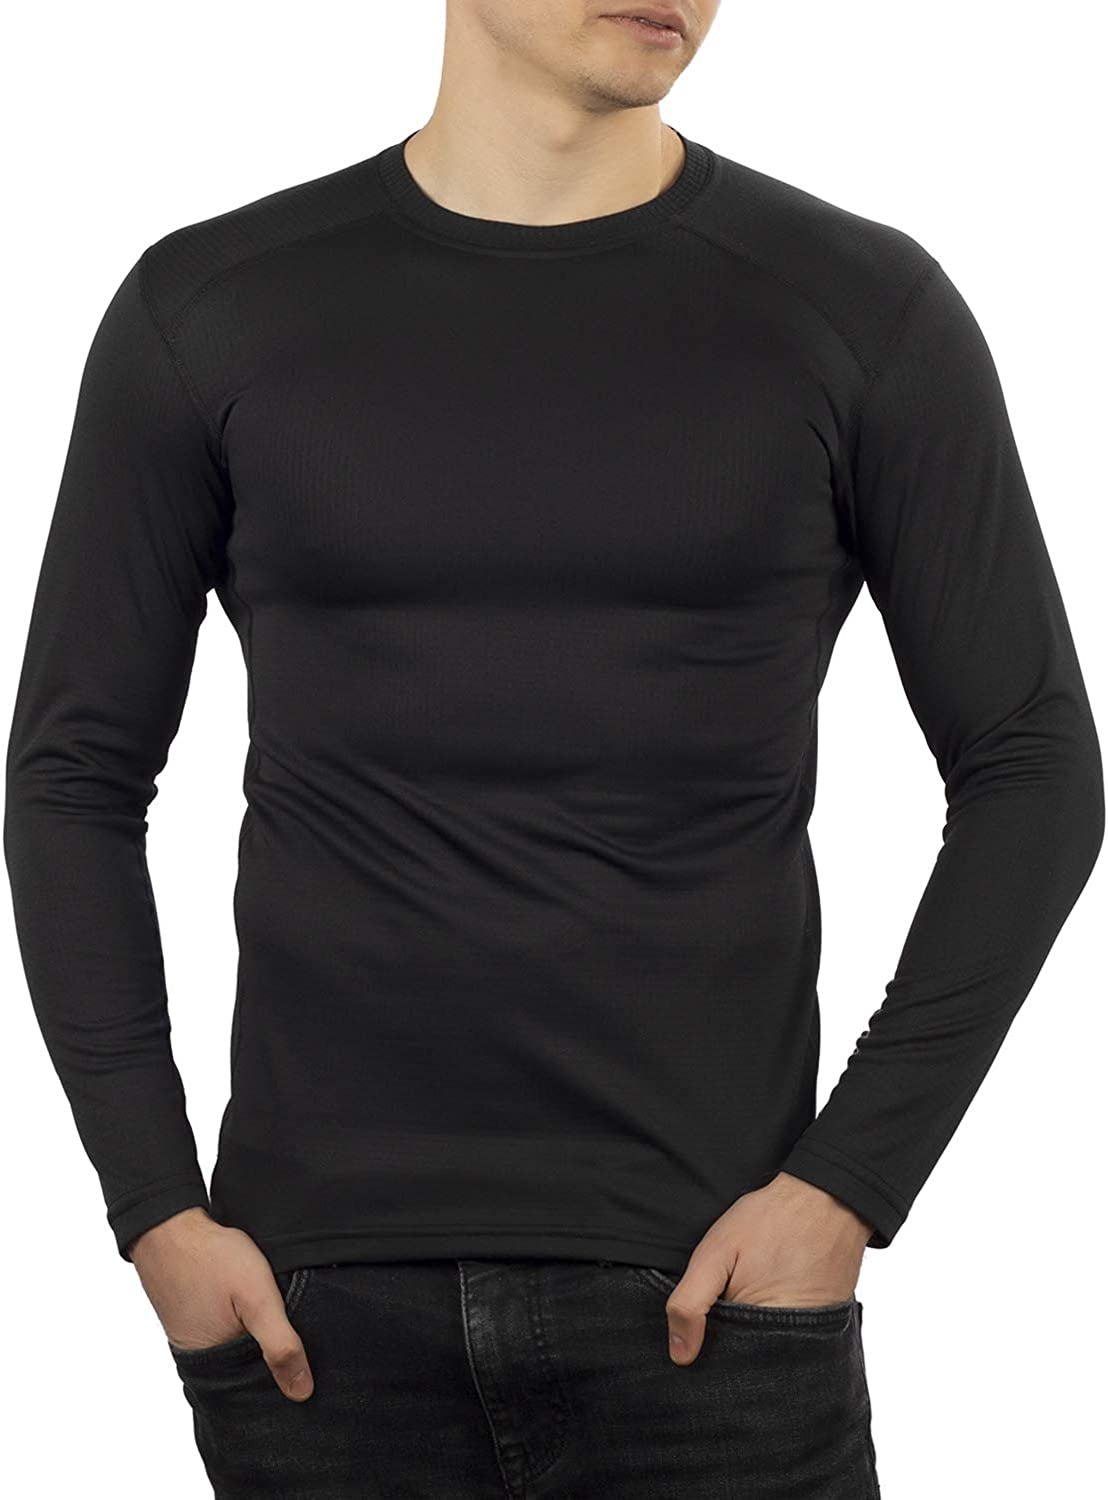 281Z Mens Thermal Lightweight Base Layer Shirt - Hiking Trekking Outdoor - Polartec Power Grid - Terrain Reliability Line